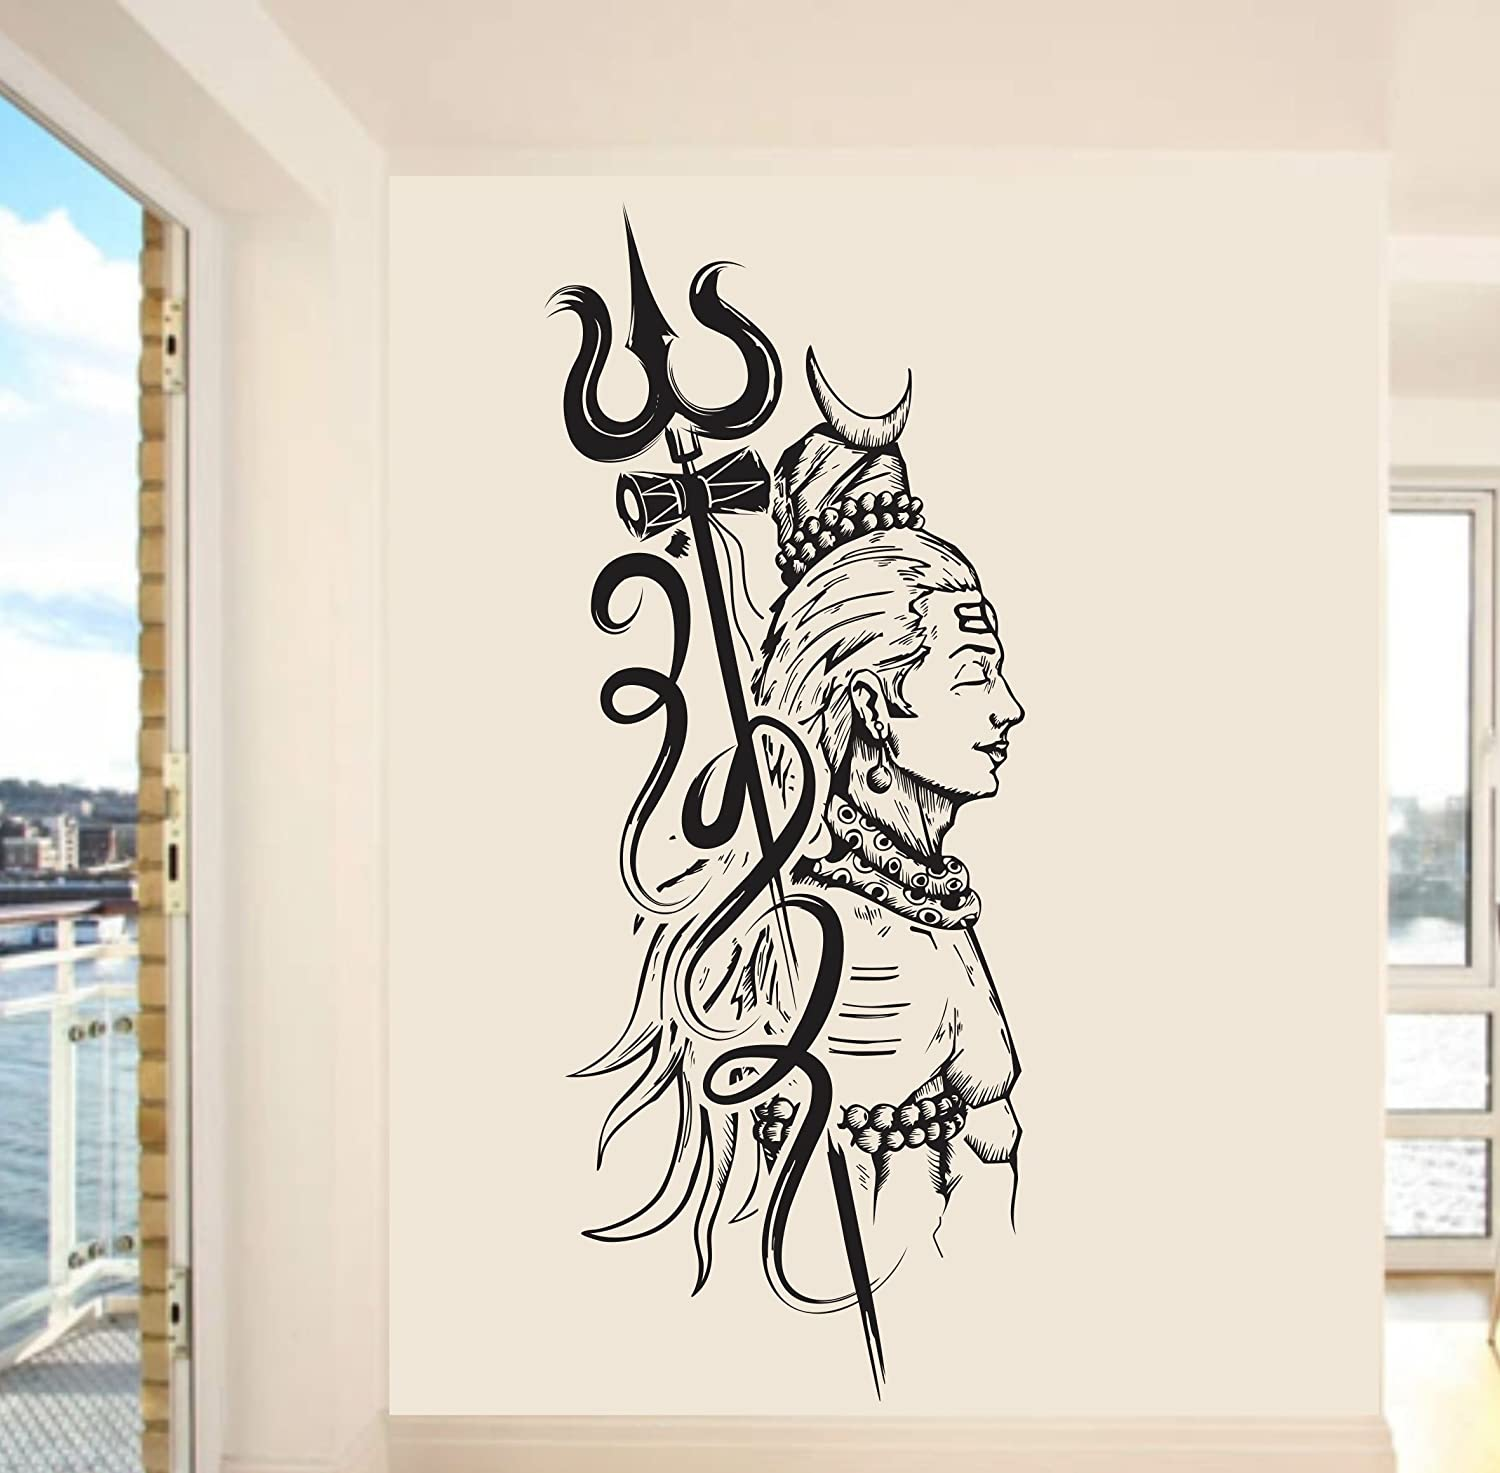 Buy happy walls lord shiva wall sticker for home wall art wall mural pvc vinyl online at low prices in india amazon in